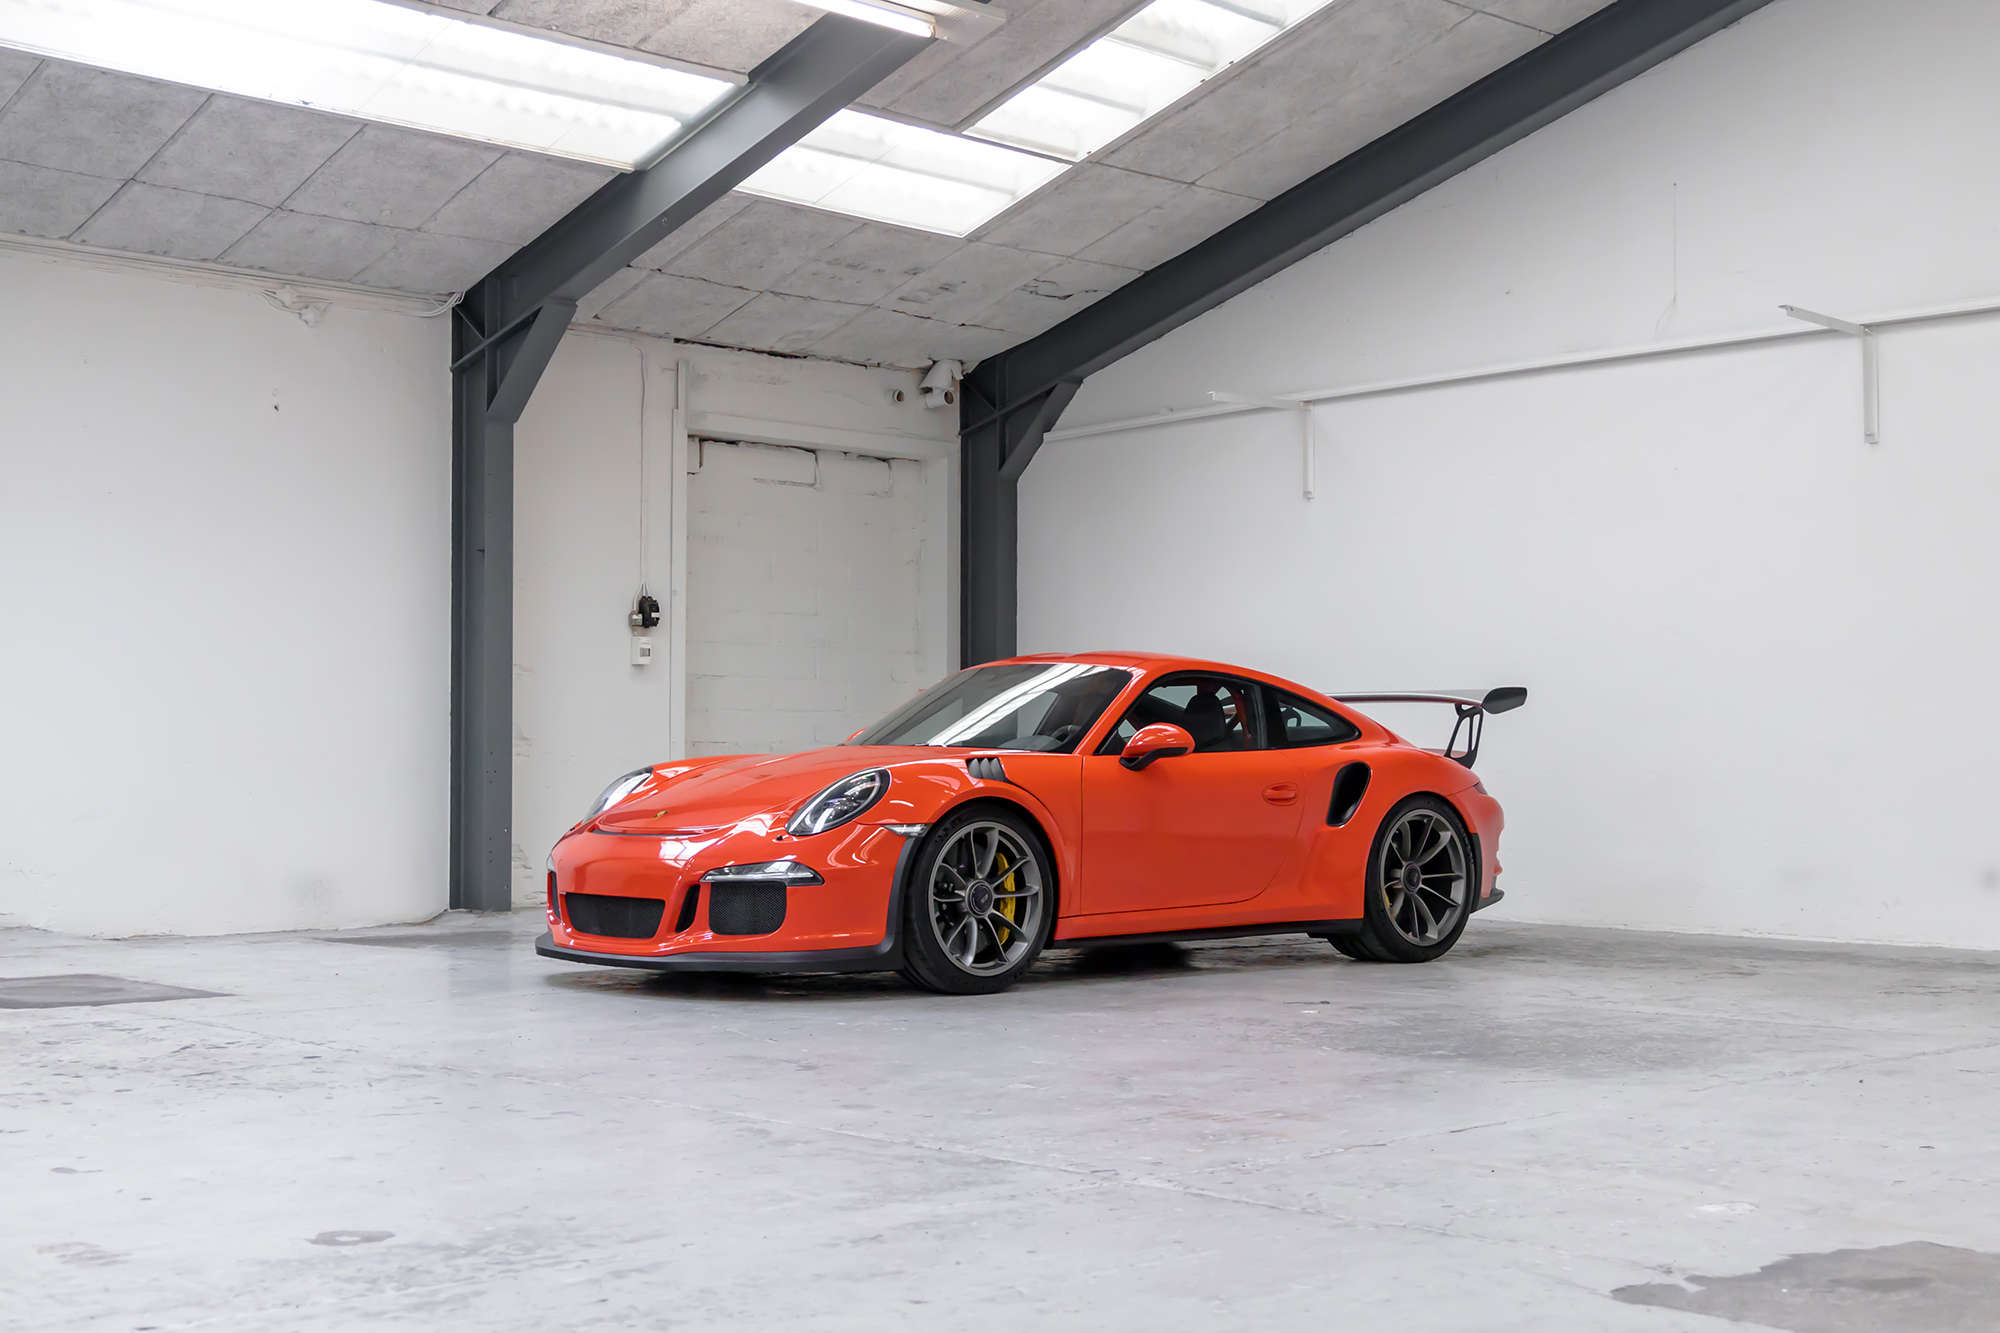 Porsche 911 Gt3 Elferspot The Marketplace For Pre Owned Porsche